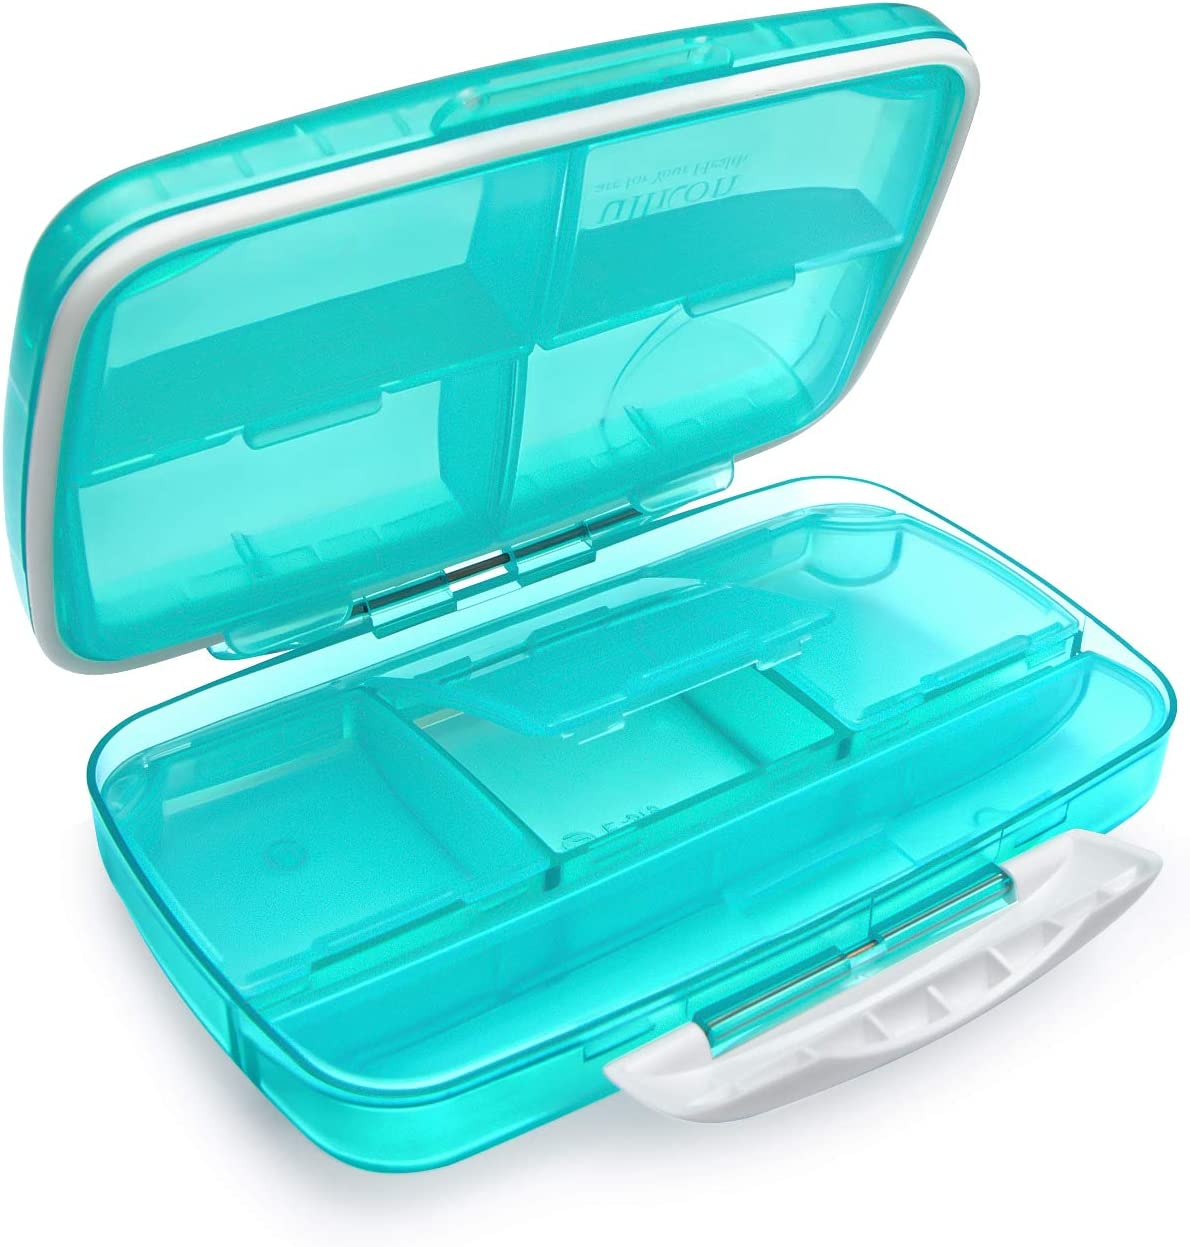 Travel Pill Organizer Large Fullicon Weekly Vitamin Container Portable Medication Case, Oversize 8 Compartment Pill Box, Pill Holder - Airtight & Moistureproof (Light Green)